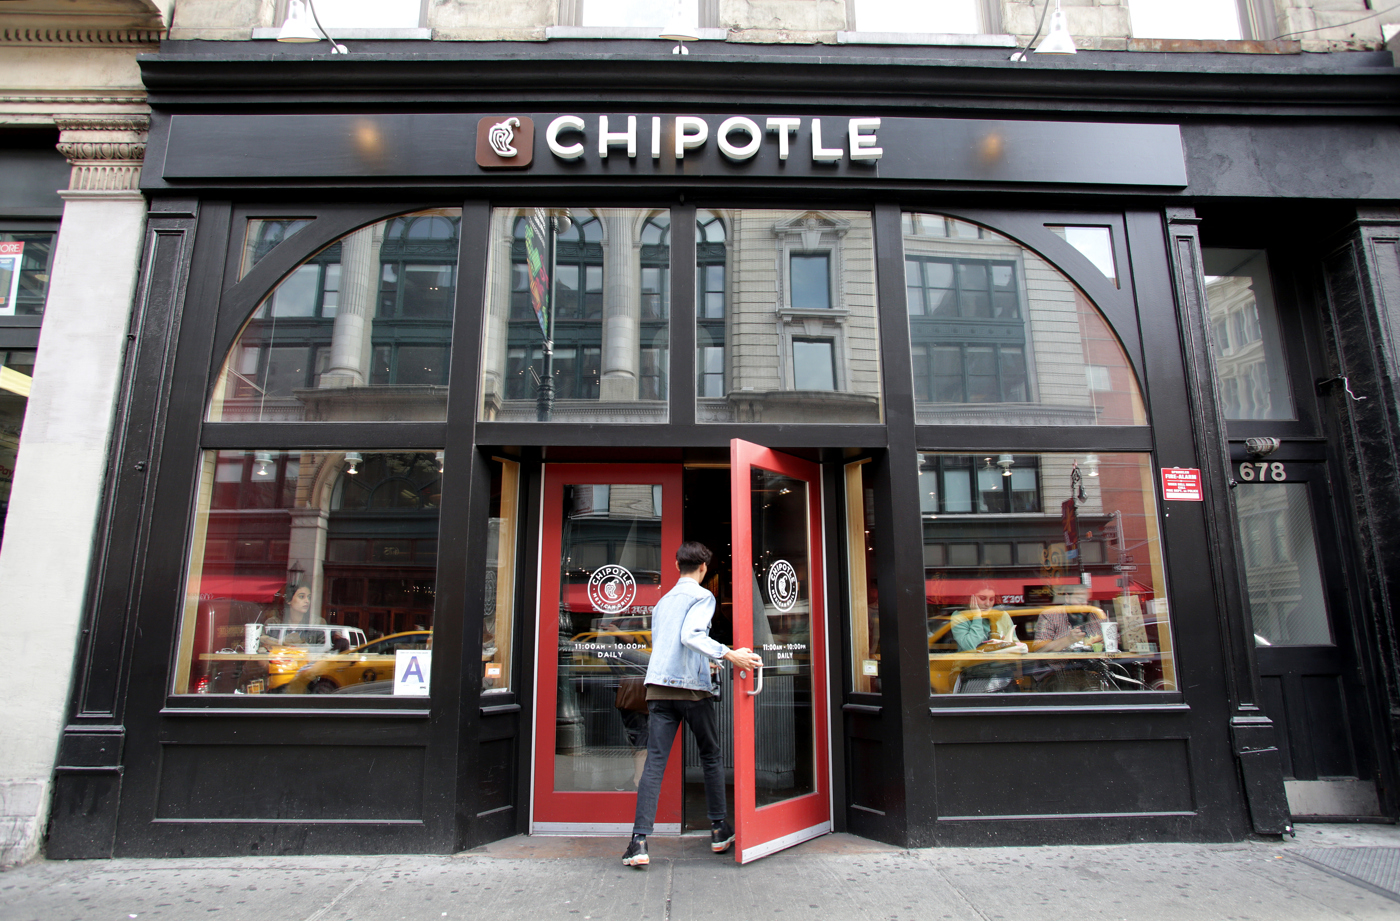 Chipotle stock, CMG stock news and analysis